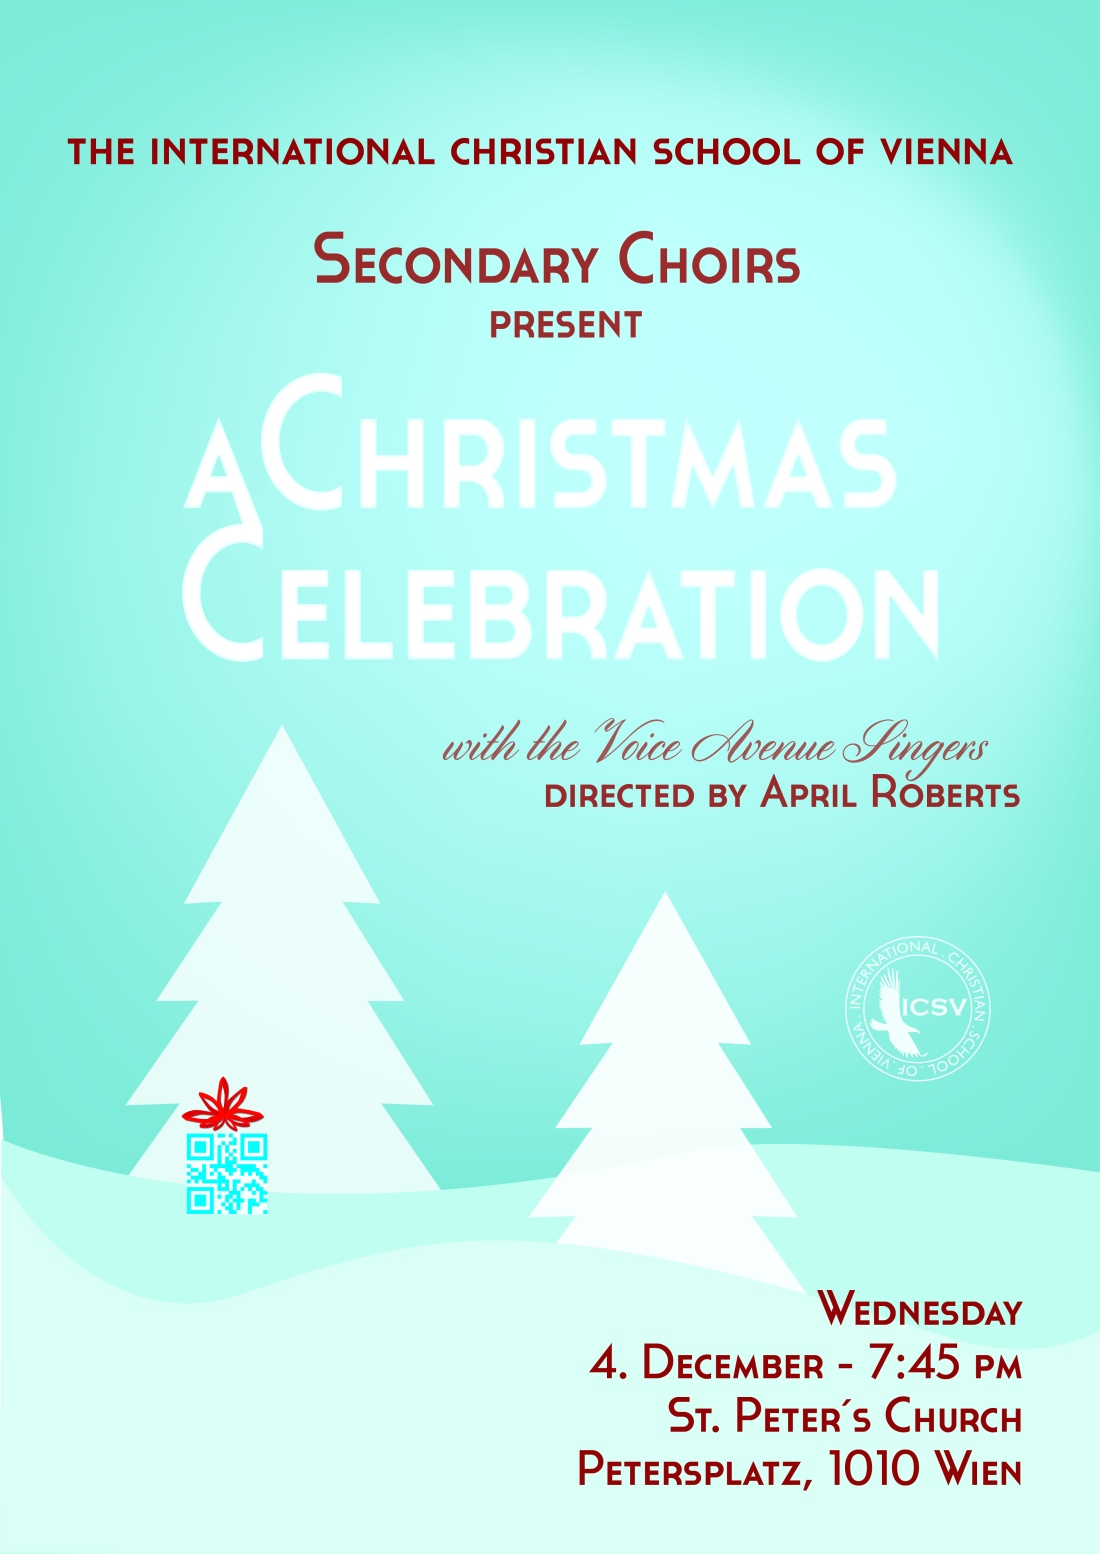 ICSV Secondary Choirs Christmas Concert Poster 2013 - Final Draft